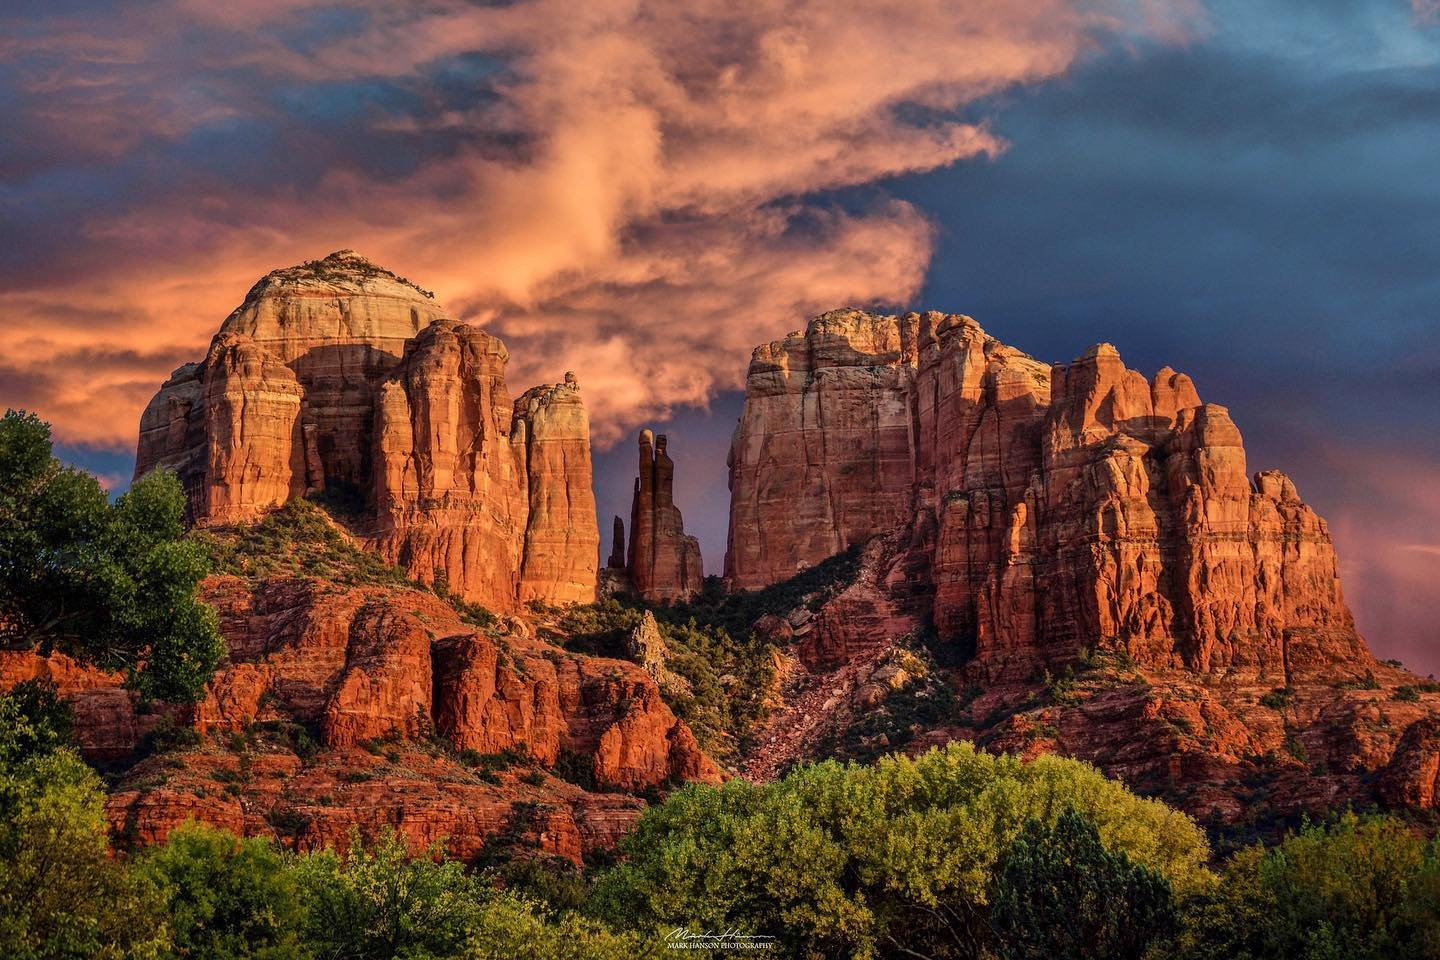 Sunset over the red rocks in Sedona, Arizona.